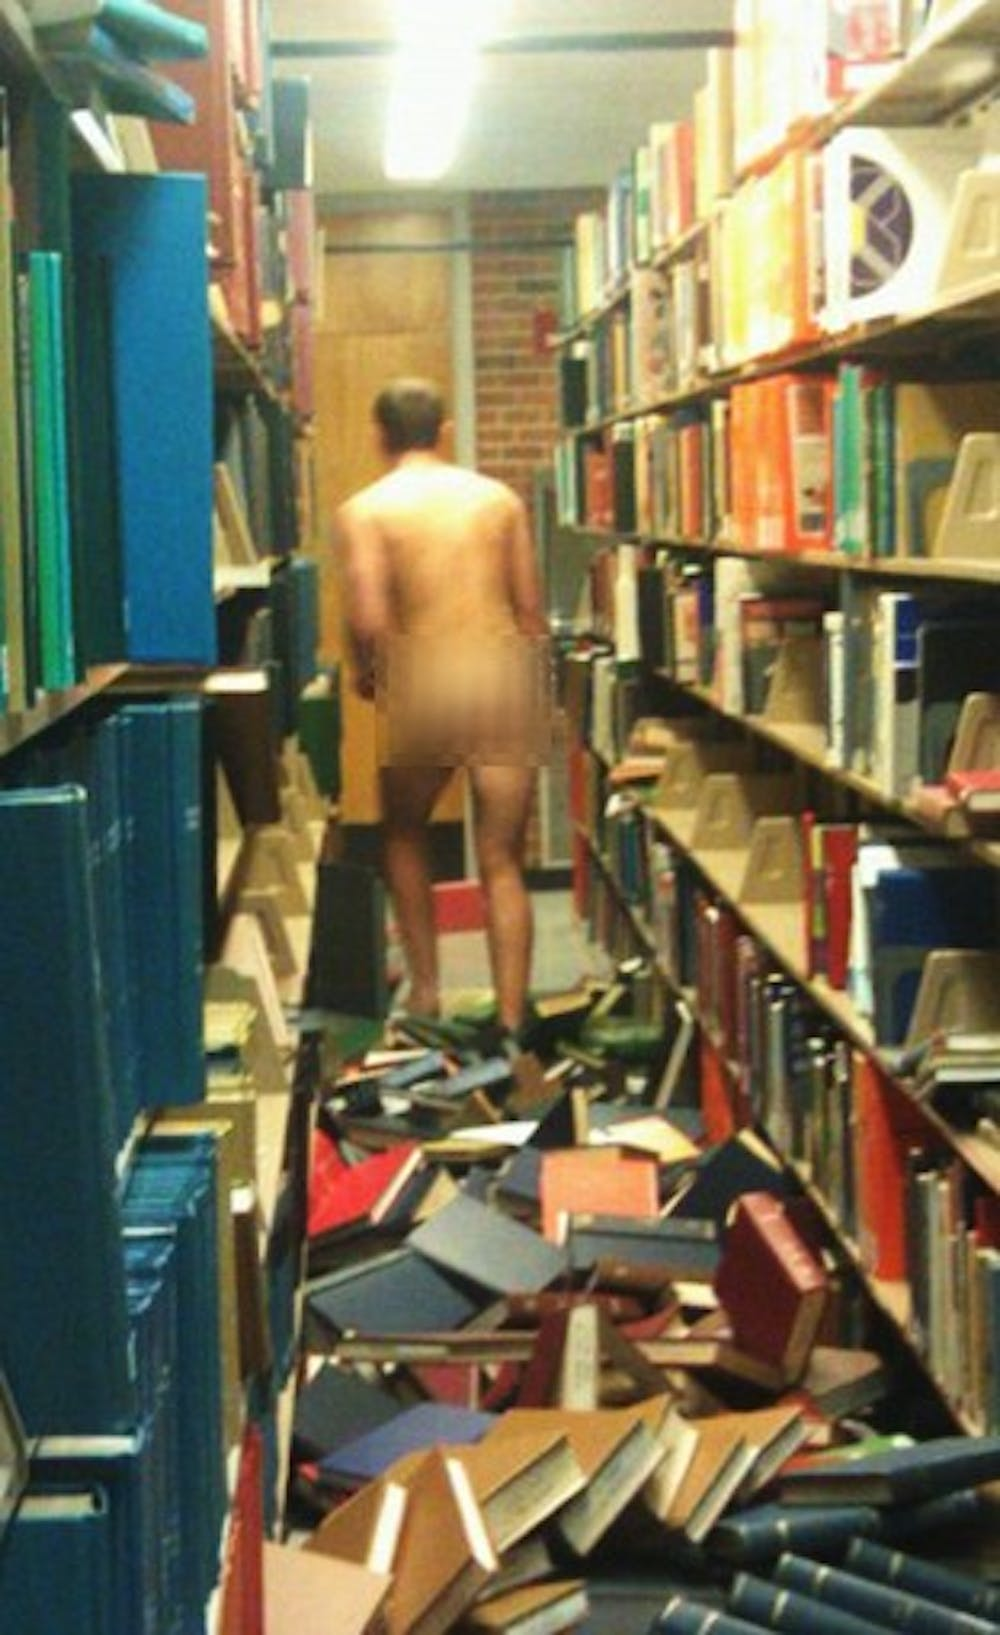 Naked student trashes NC State campus library